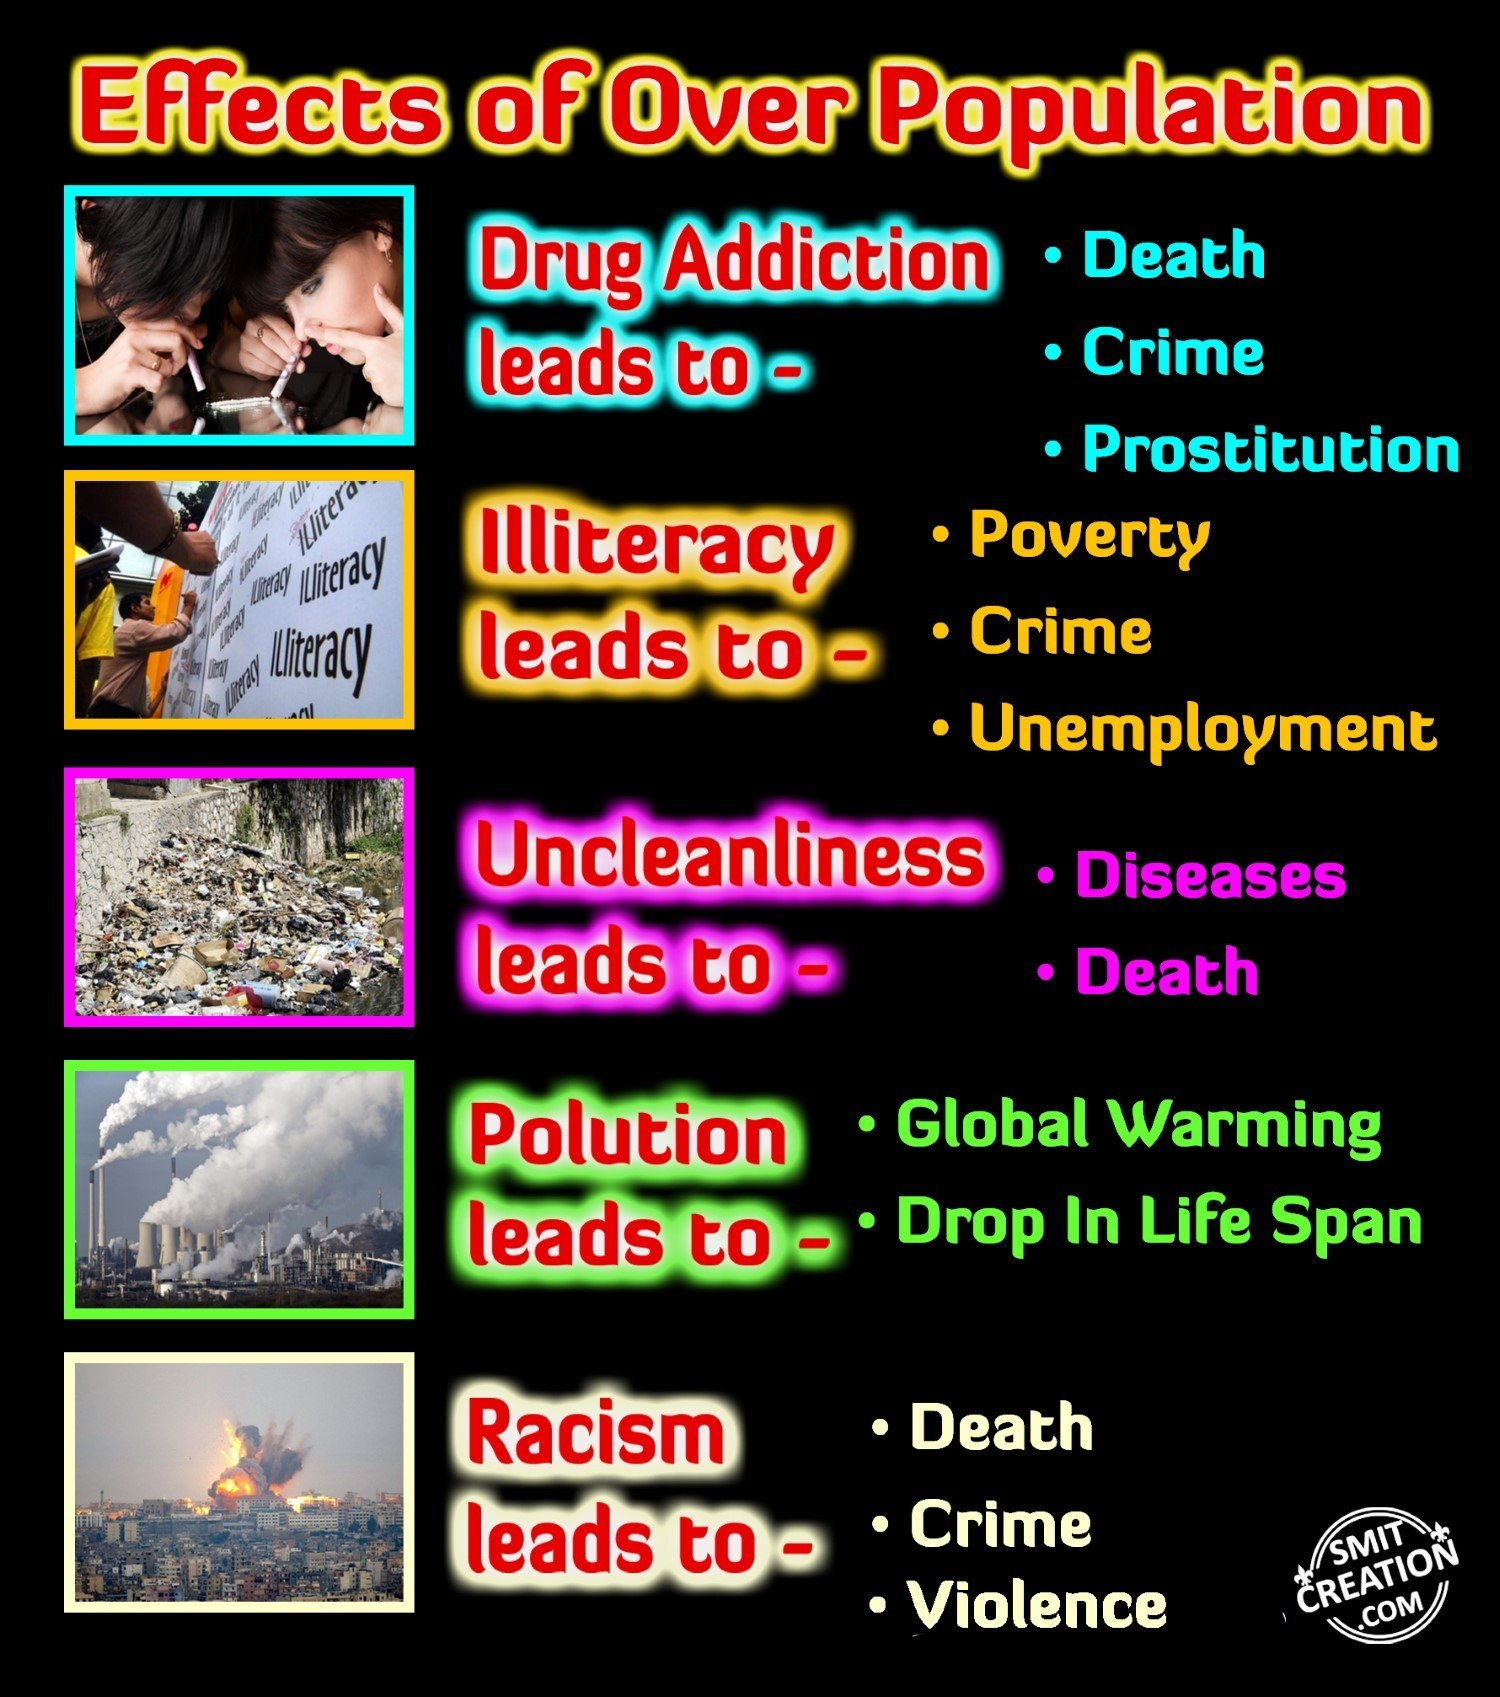 speech on overpopulation and its effects With enormous, cheap energy at its disposal, the human population grew rapidly from 1 billion in 1800 to 2 billion in 1930, 4 billion in 1975, and over 75 billion.